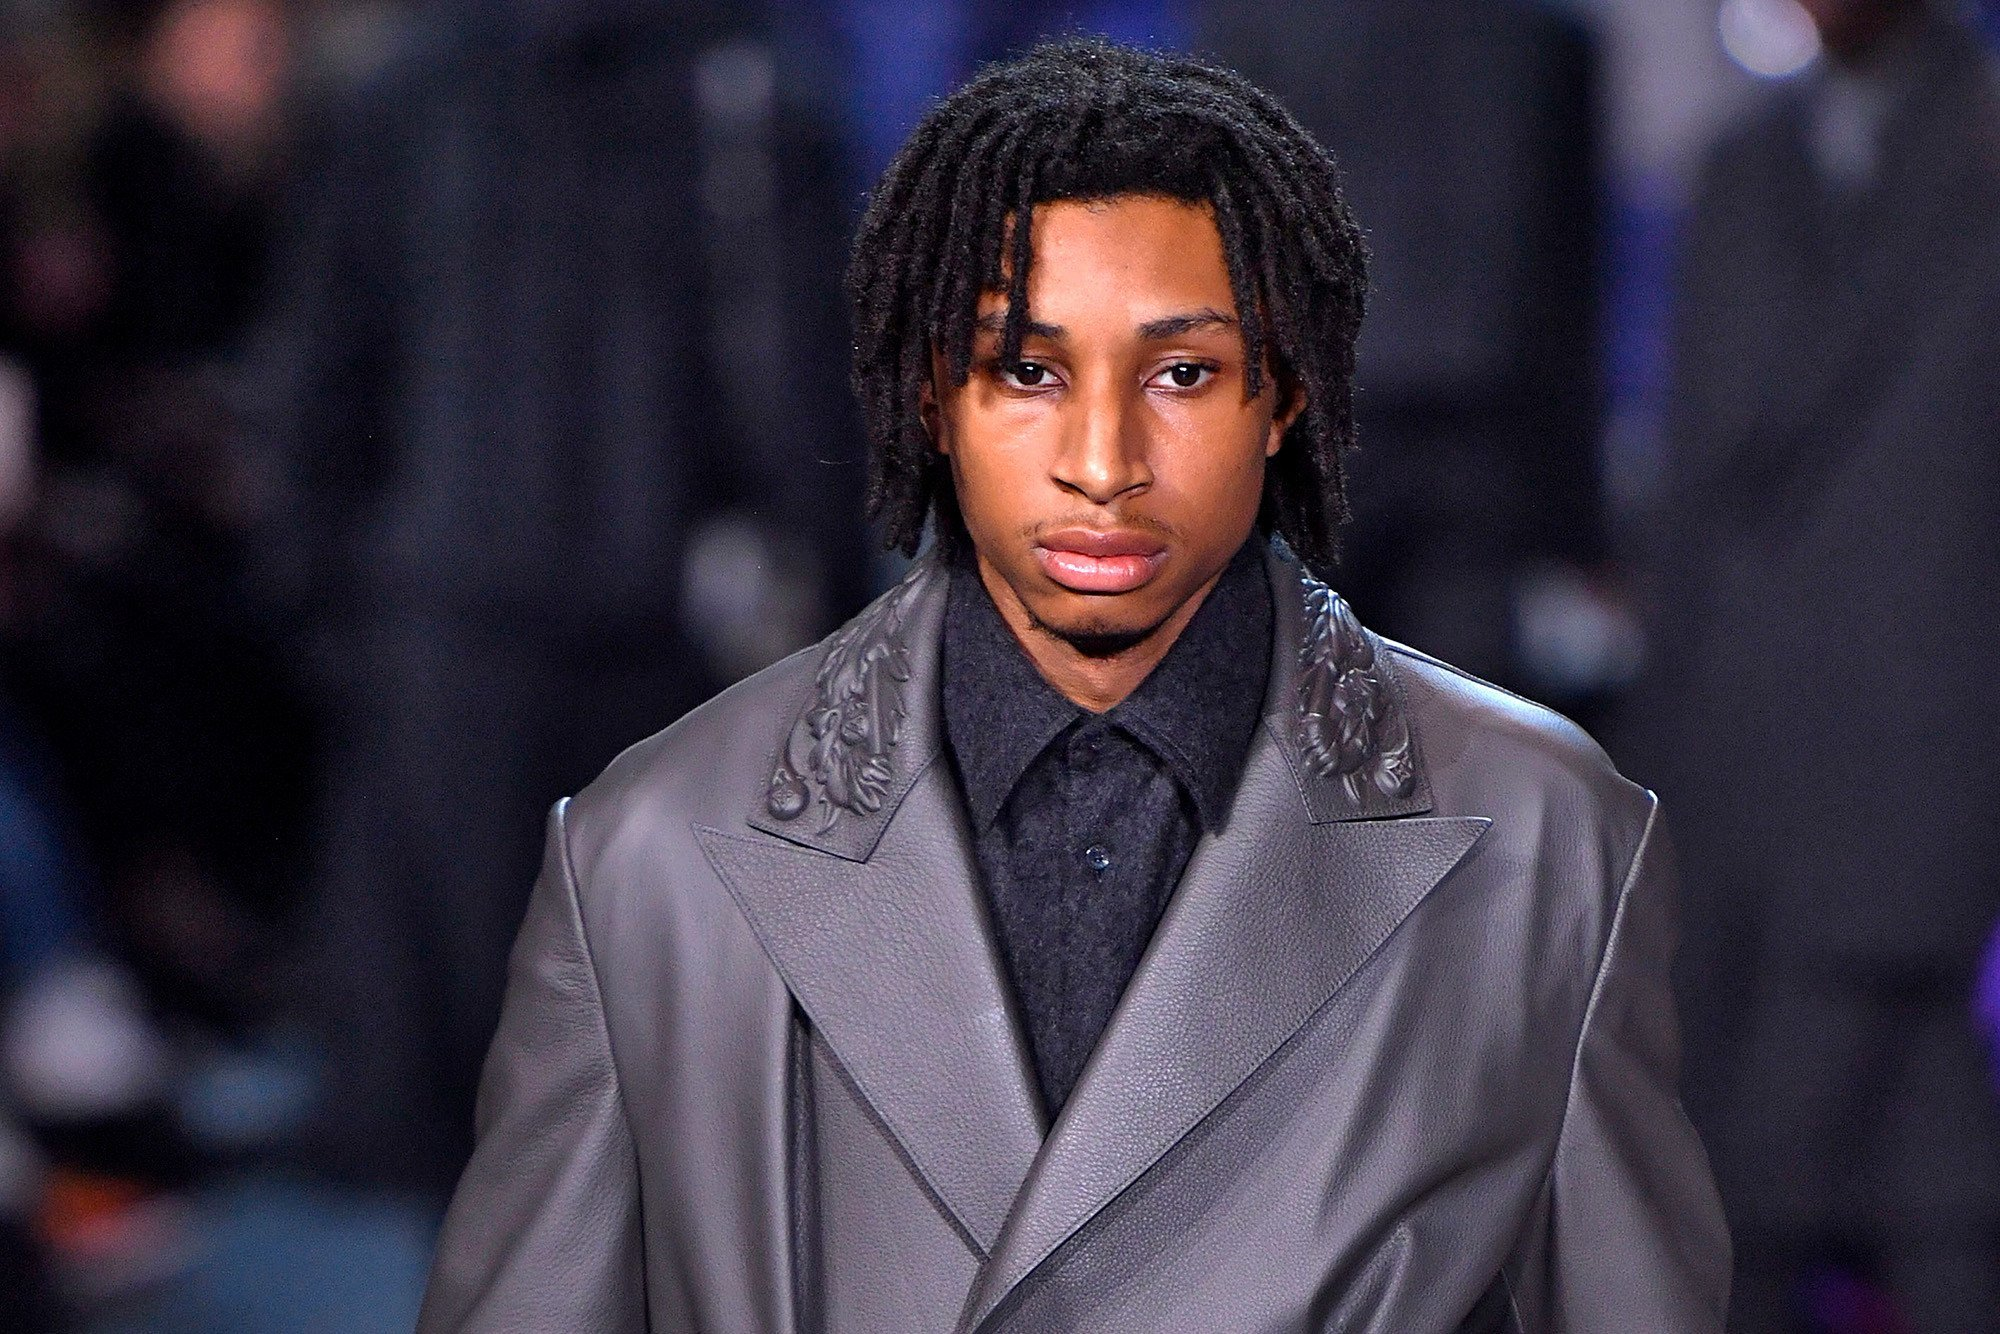 Swizz Beatz's son makes runway debut in Paris